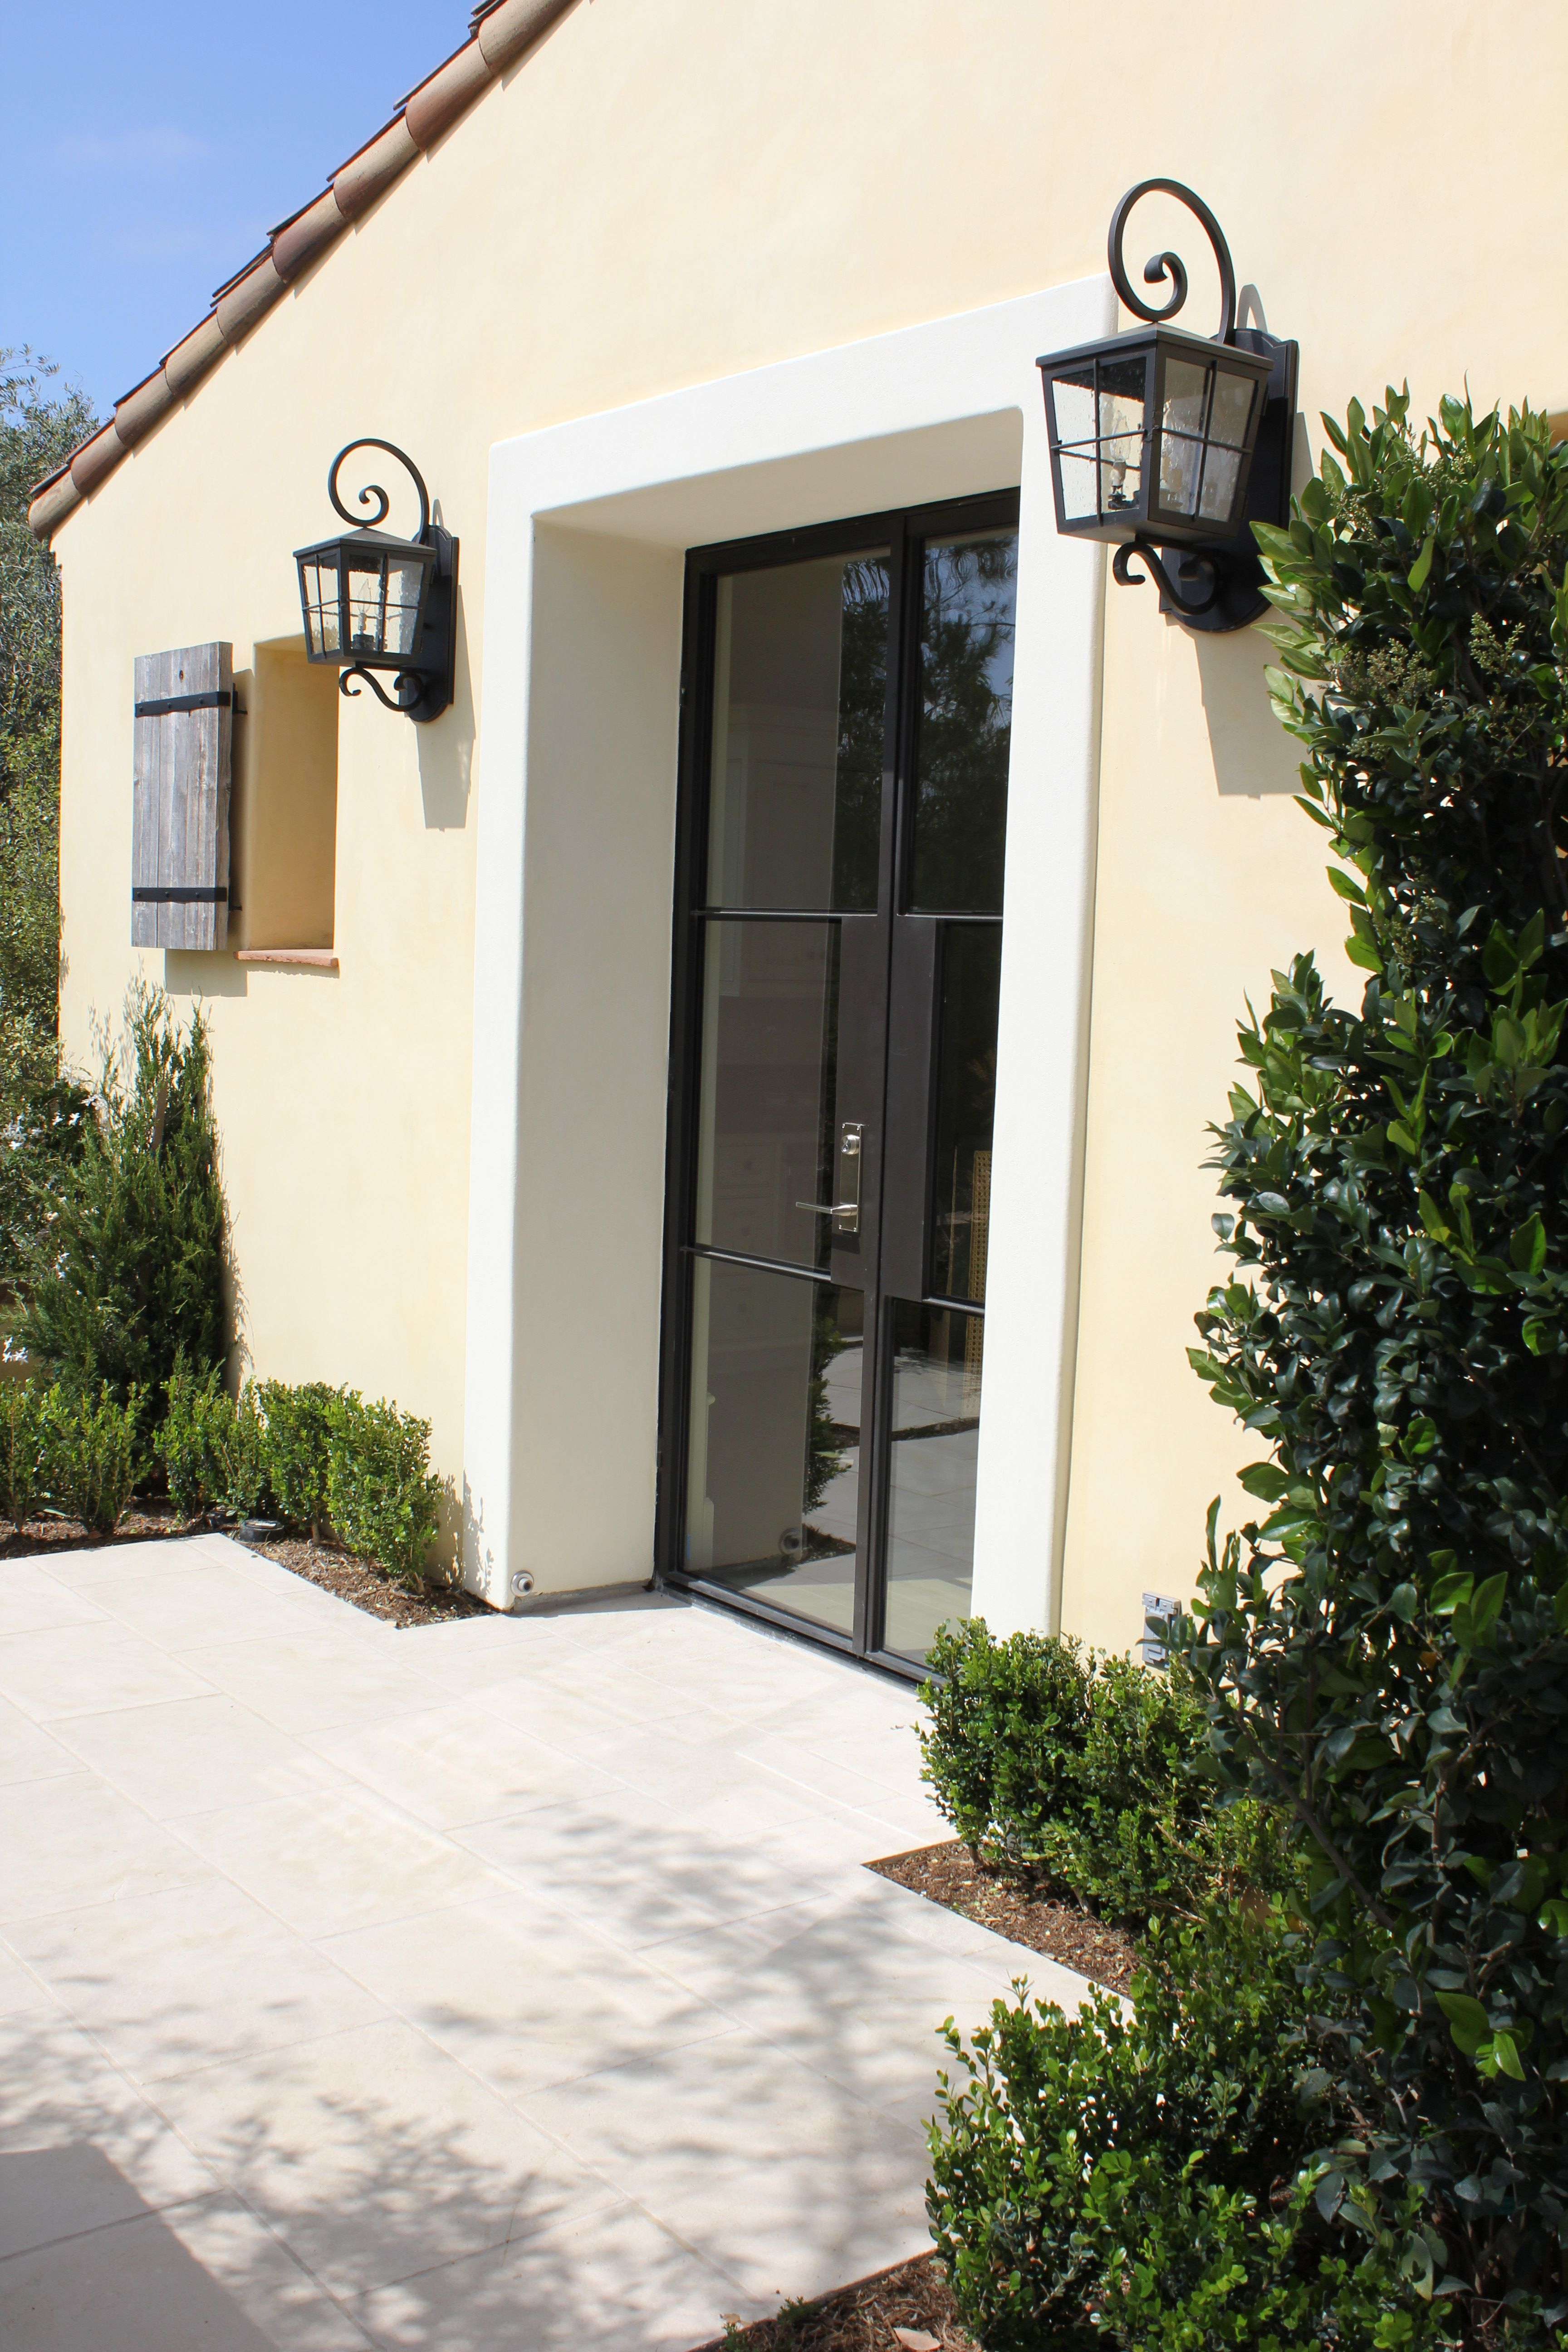 Shady Canyon Ca Santa Barbara Smooth Finish Butter Yellow White Trim Sanded Wood Patio Iron Gates Stucco Homes House Exterior Contemporary House Exterior